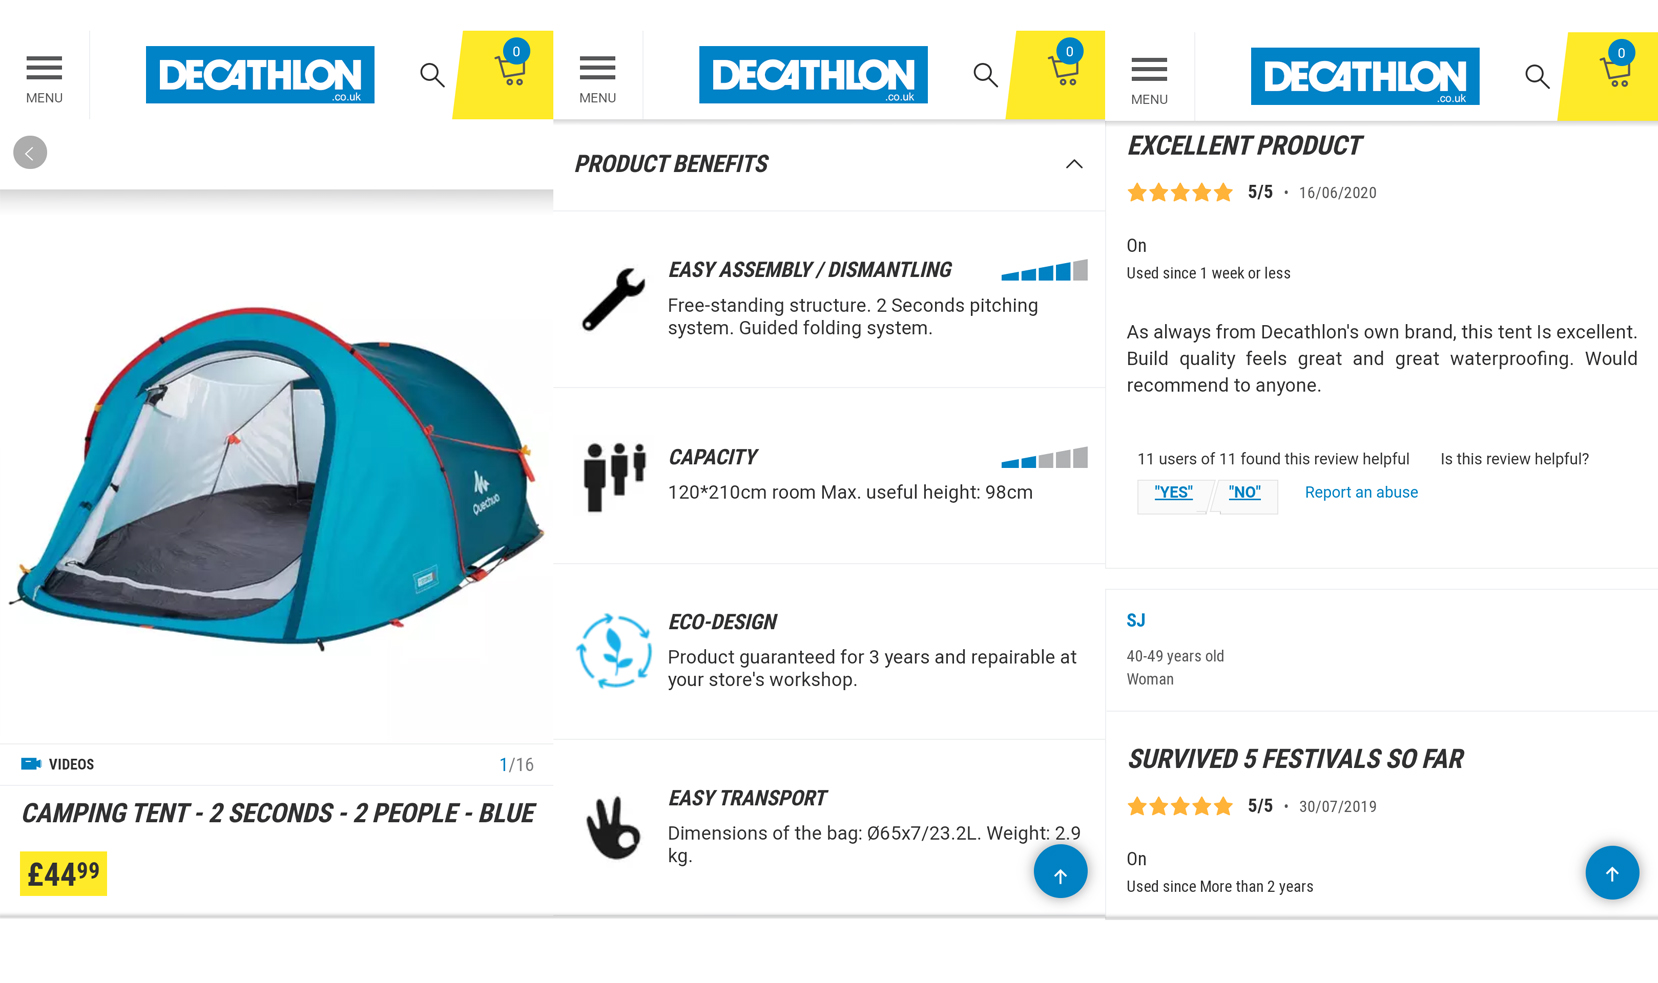 decathlon product page